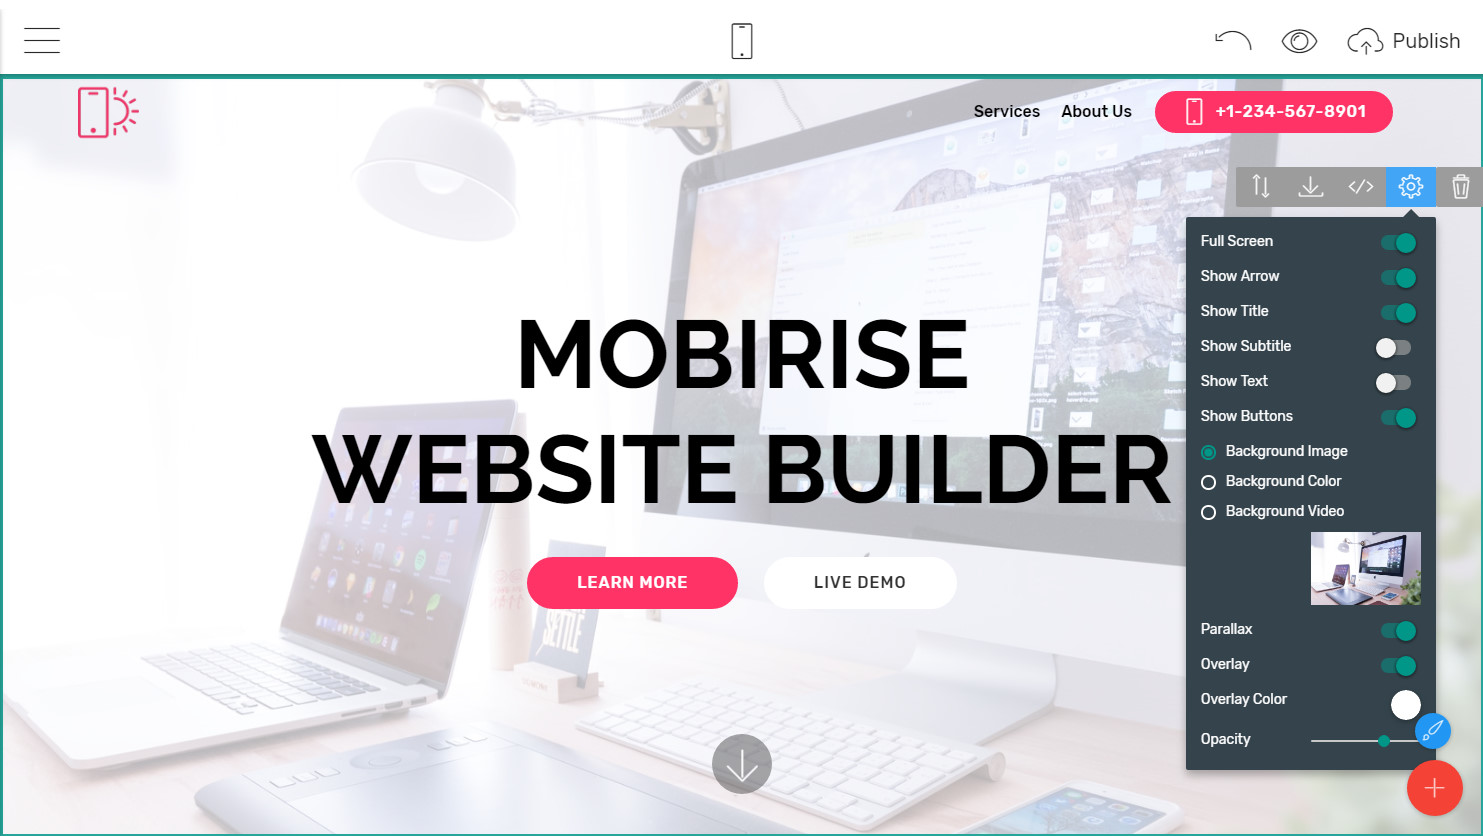 mobirise mobile website builder, mobirise free website builder, mobirise bootstrap mobile template